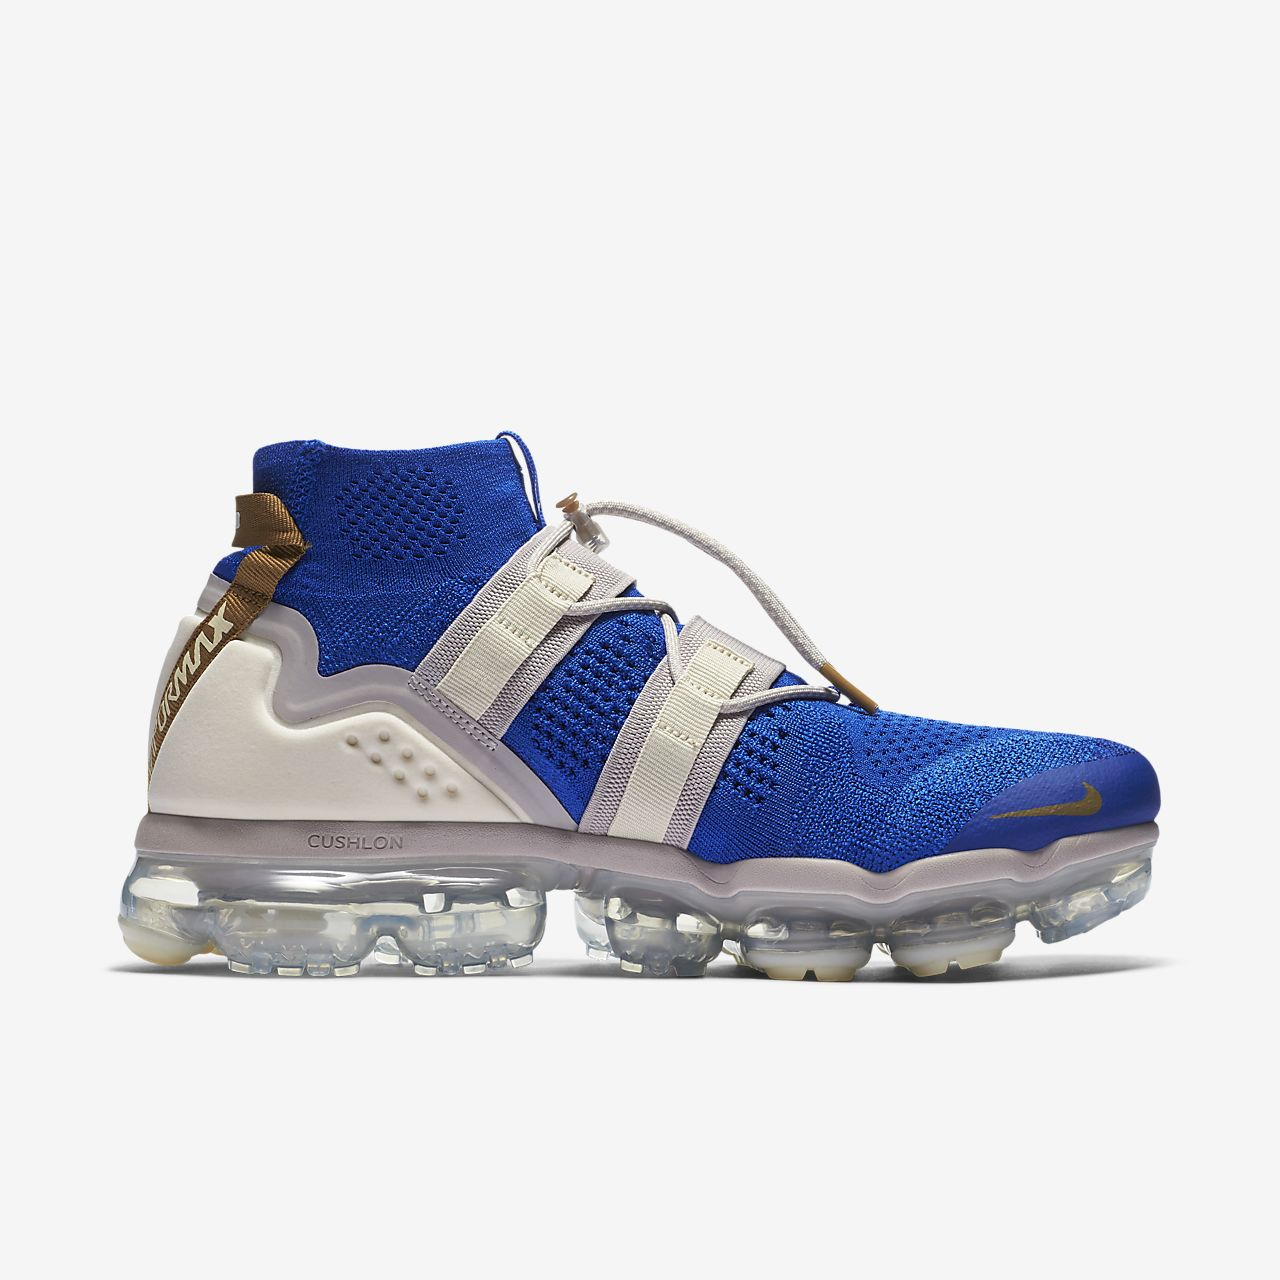 new concept 737f7 3849f ... Nike Air VaporMax Flyknit Utility Shoe